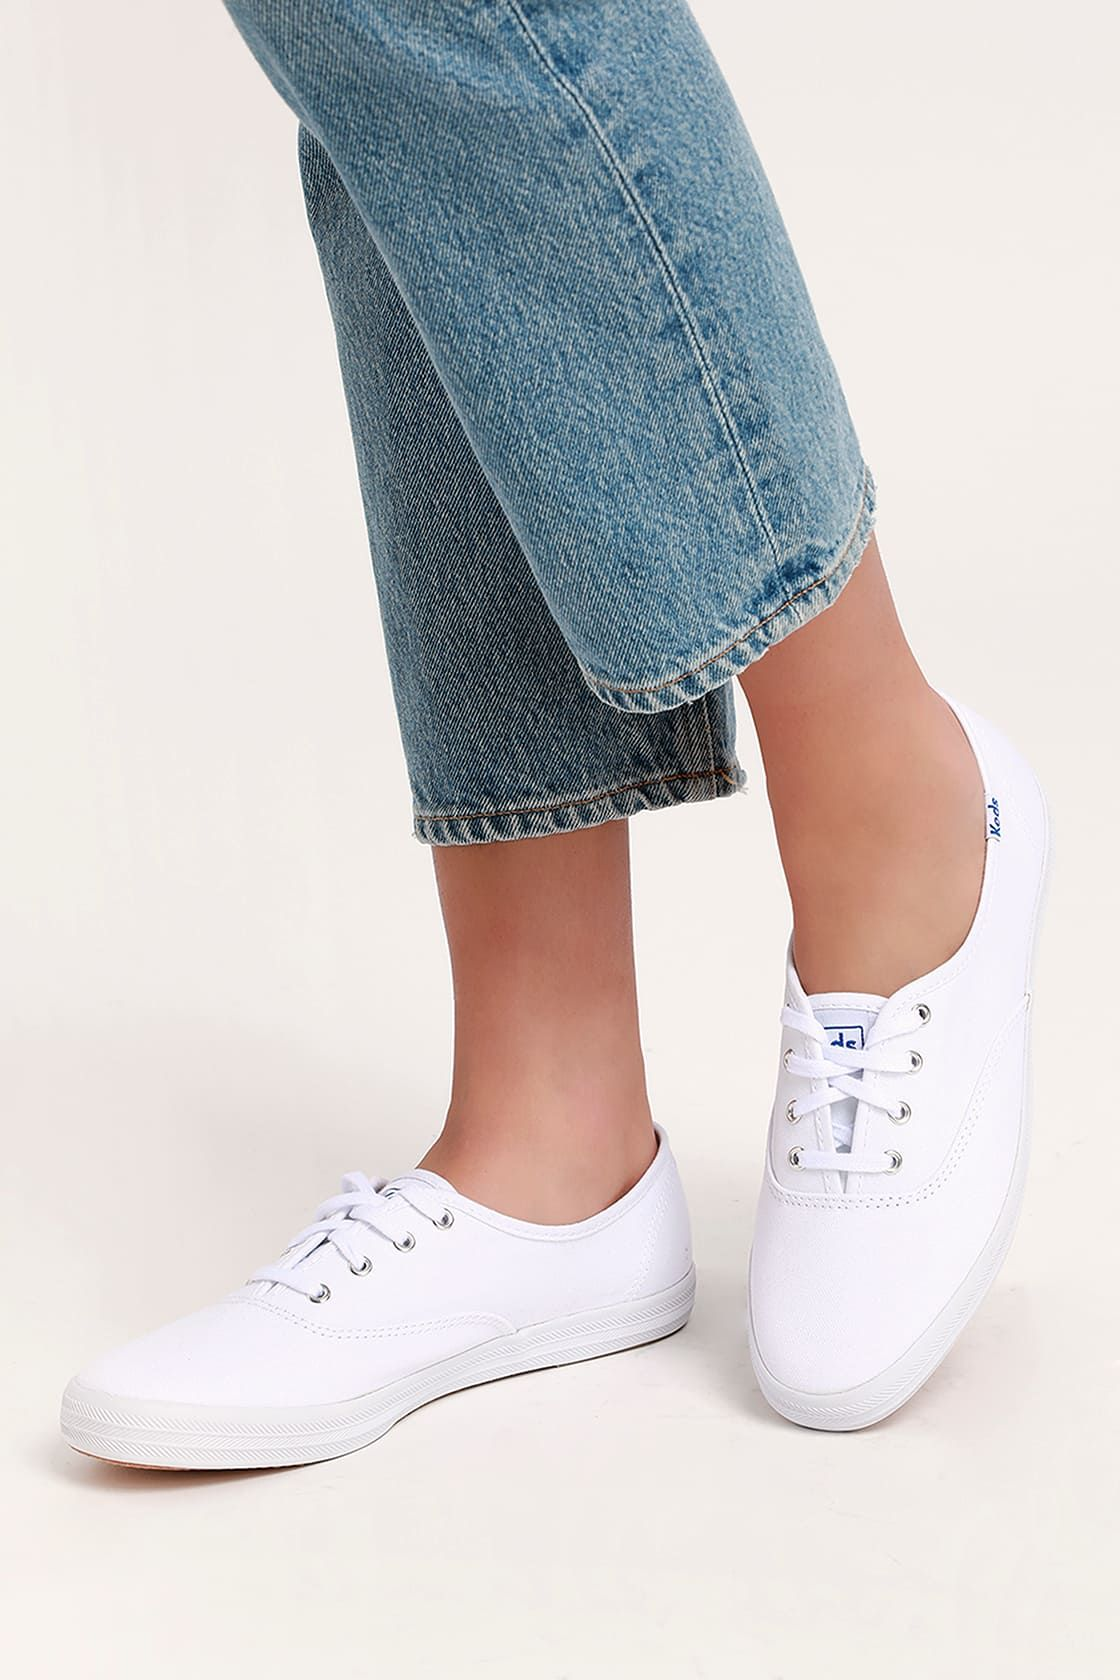 Canvas sneakers, Sneakers, Keds champion